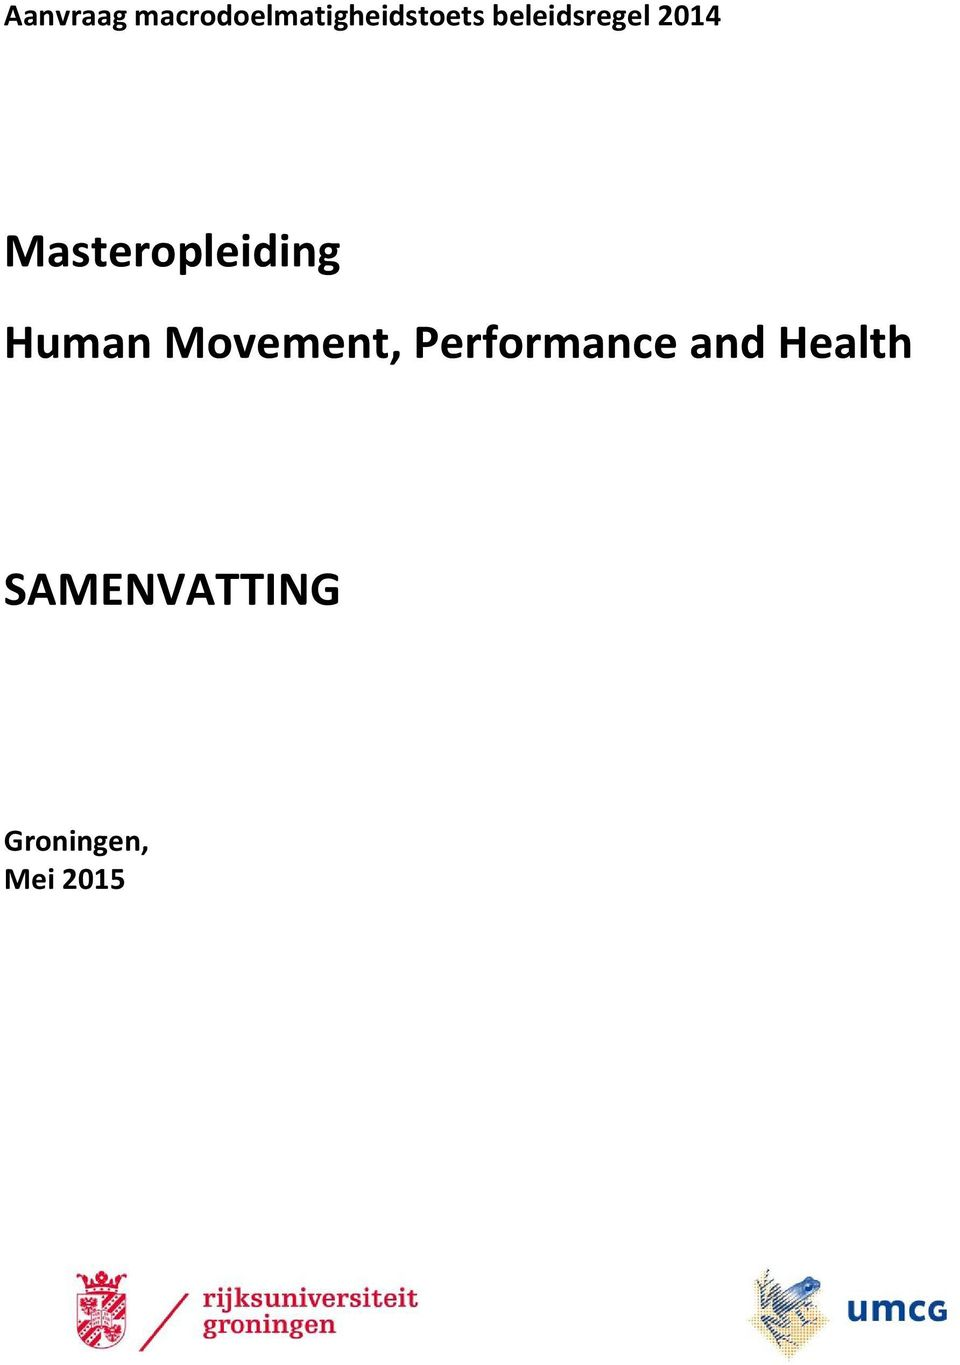 Human Movement, Performance and